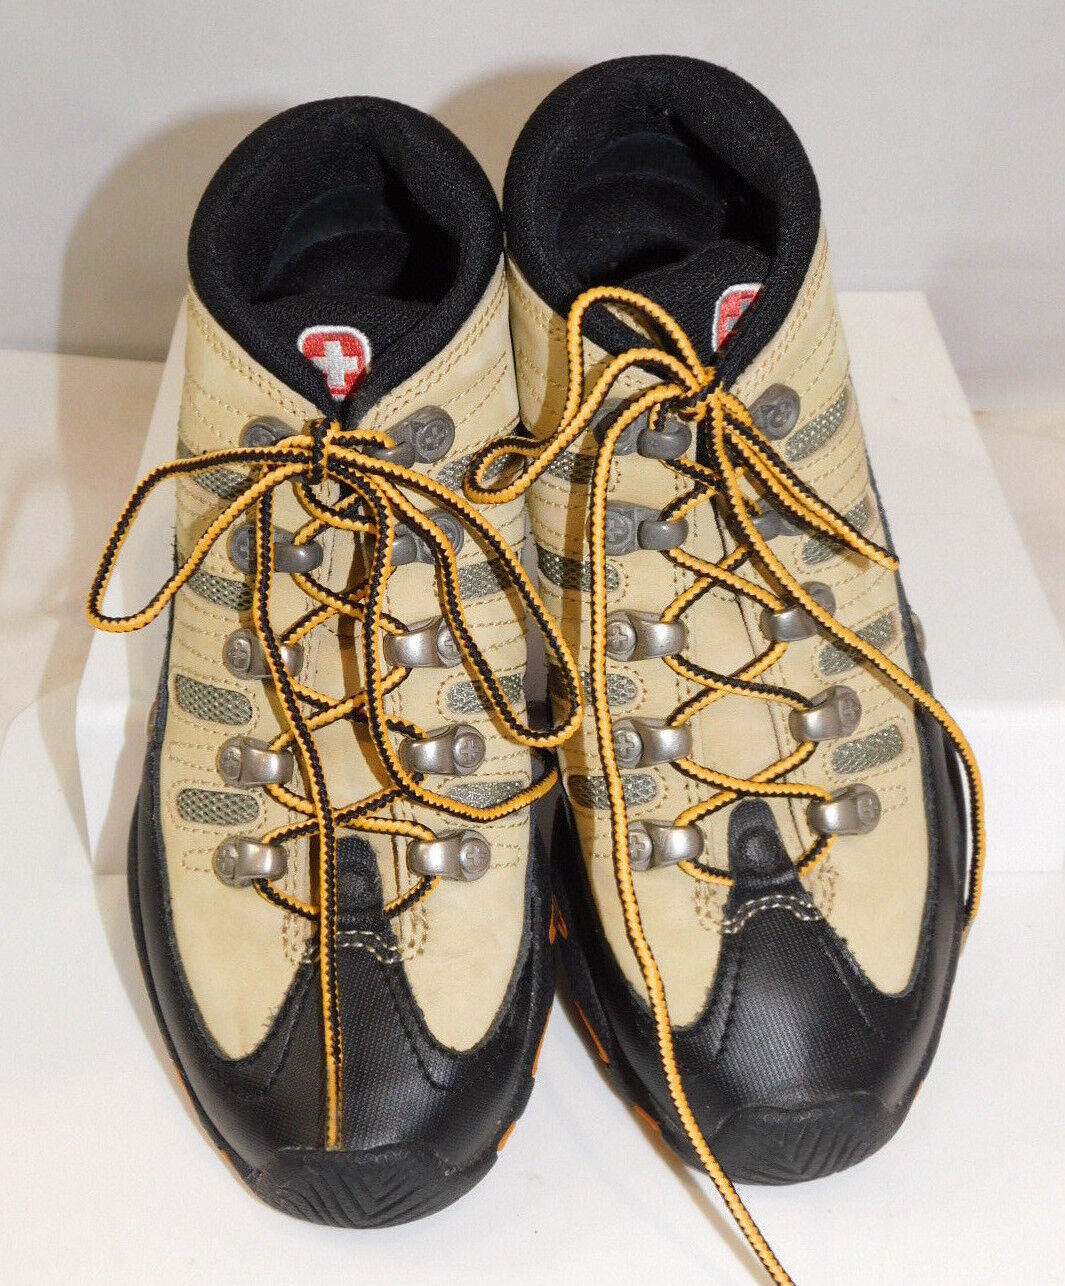 Wenger Swiss Hiking boots Leather Womens 36 US 5 Leather boots Metal Eyes Ankle high ECLN f20fa4